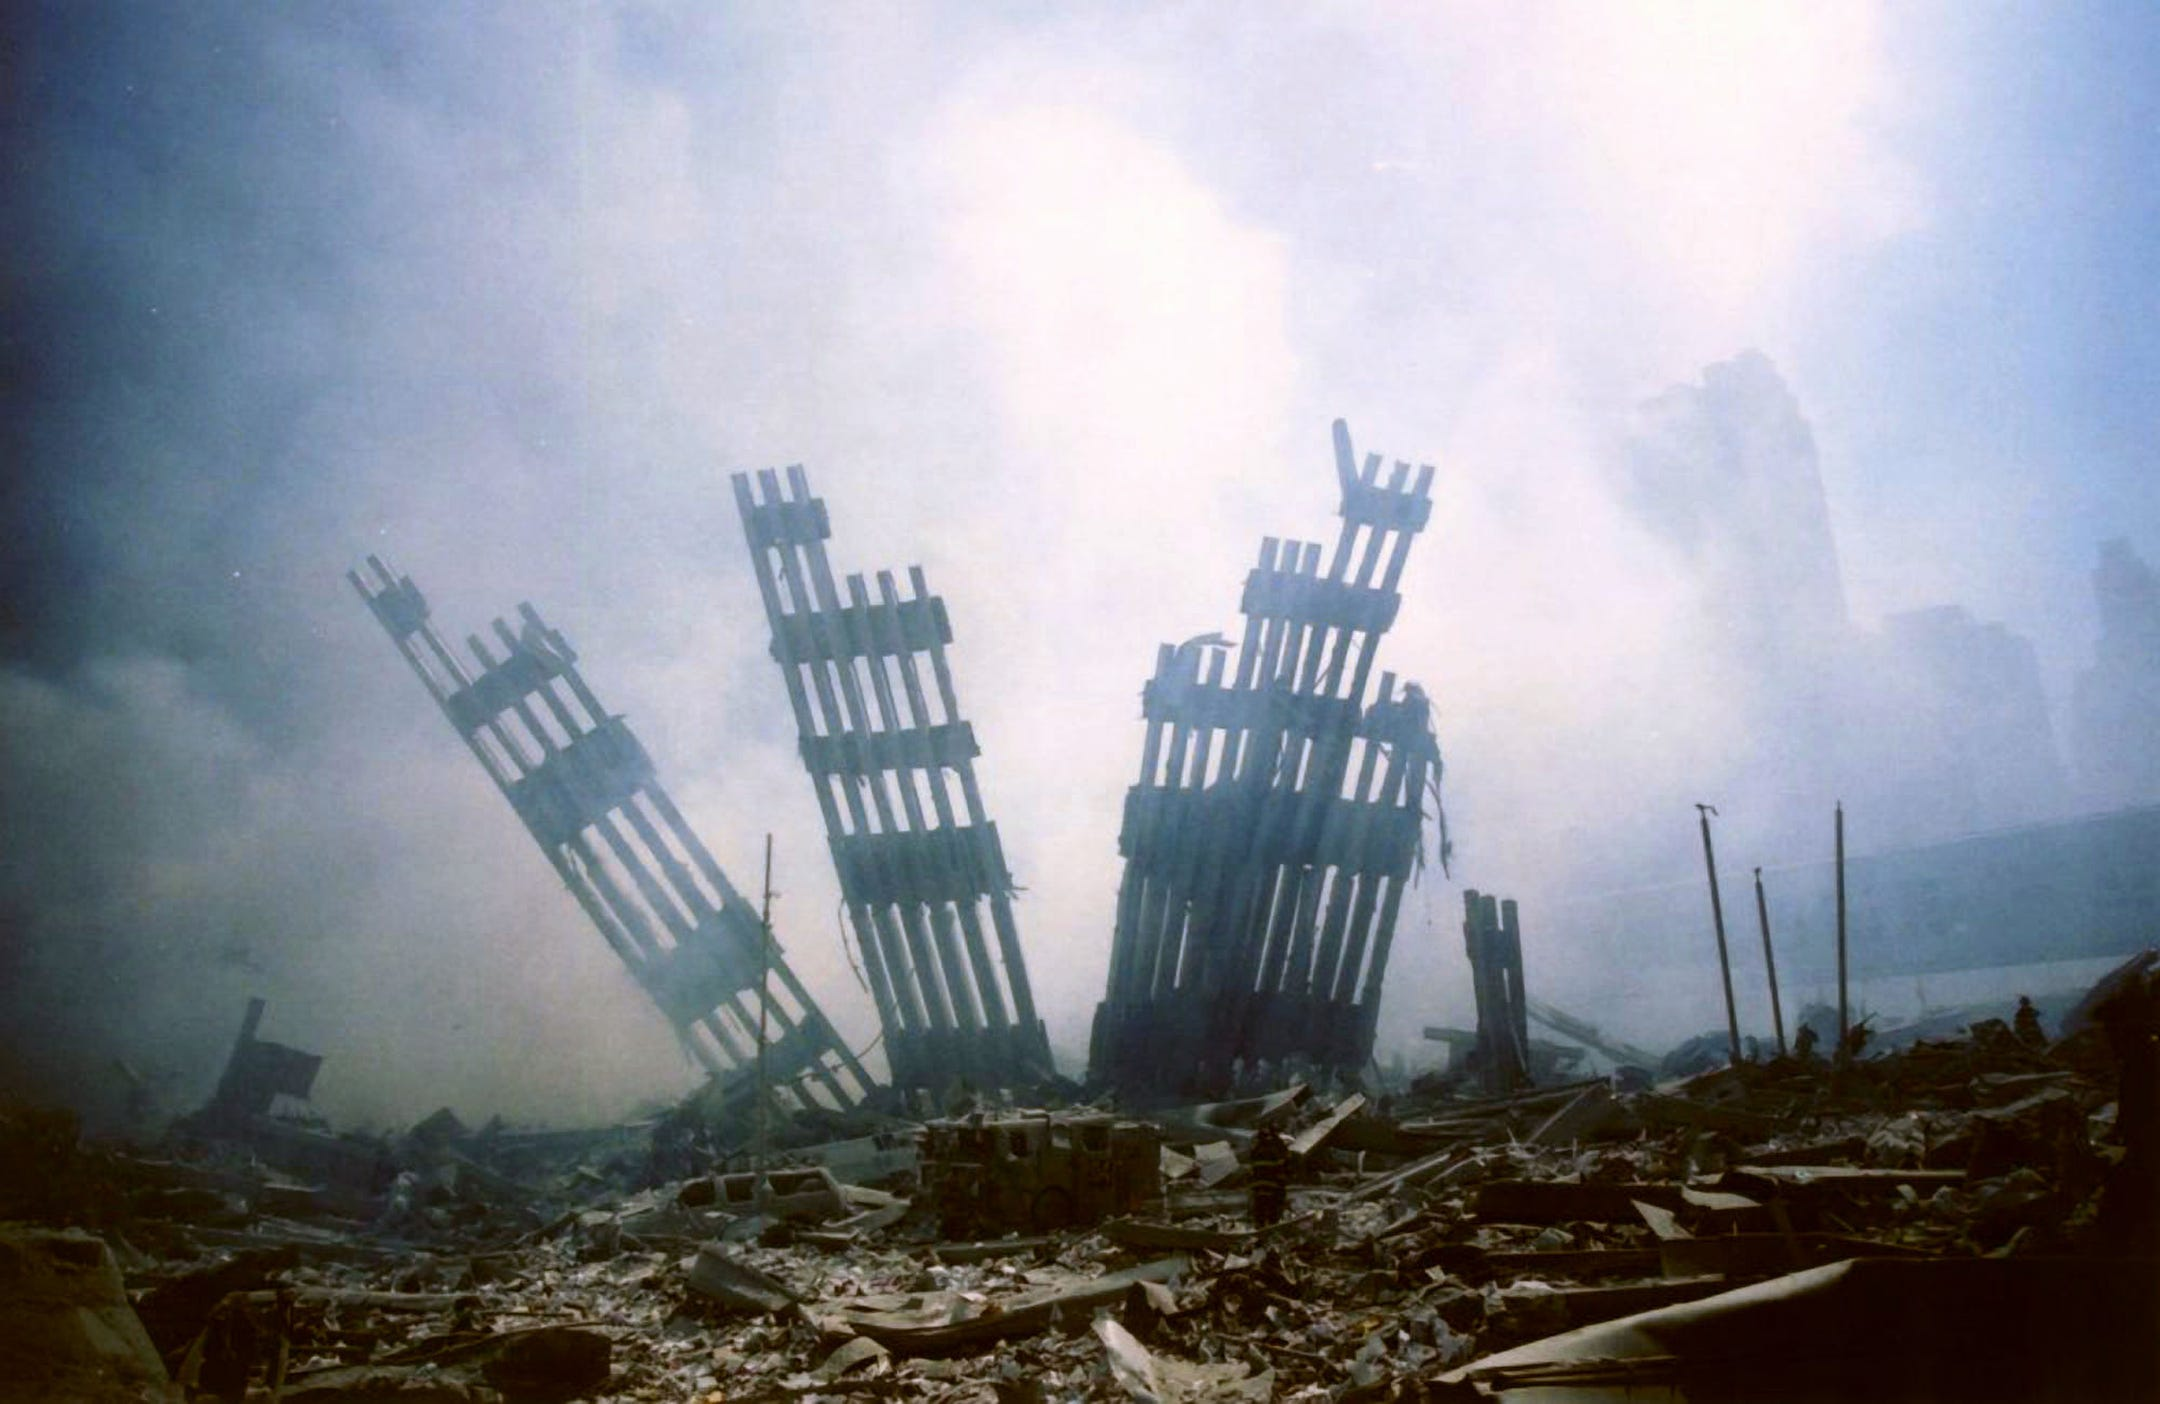 9/11: Iconic photos from the day of terror